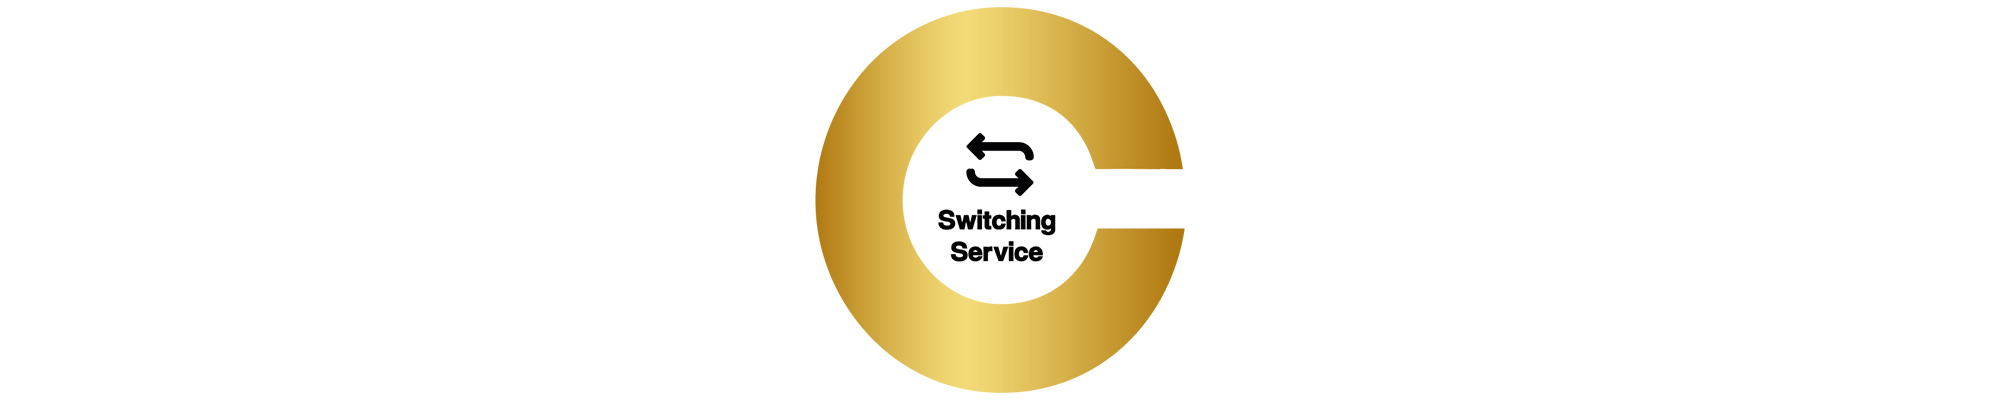 Switching Service